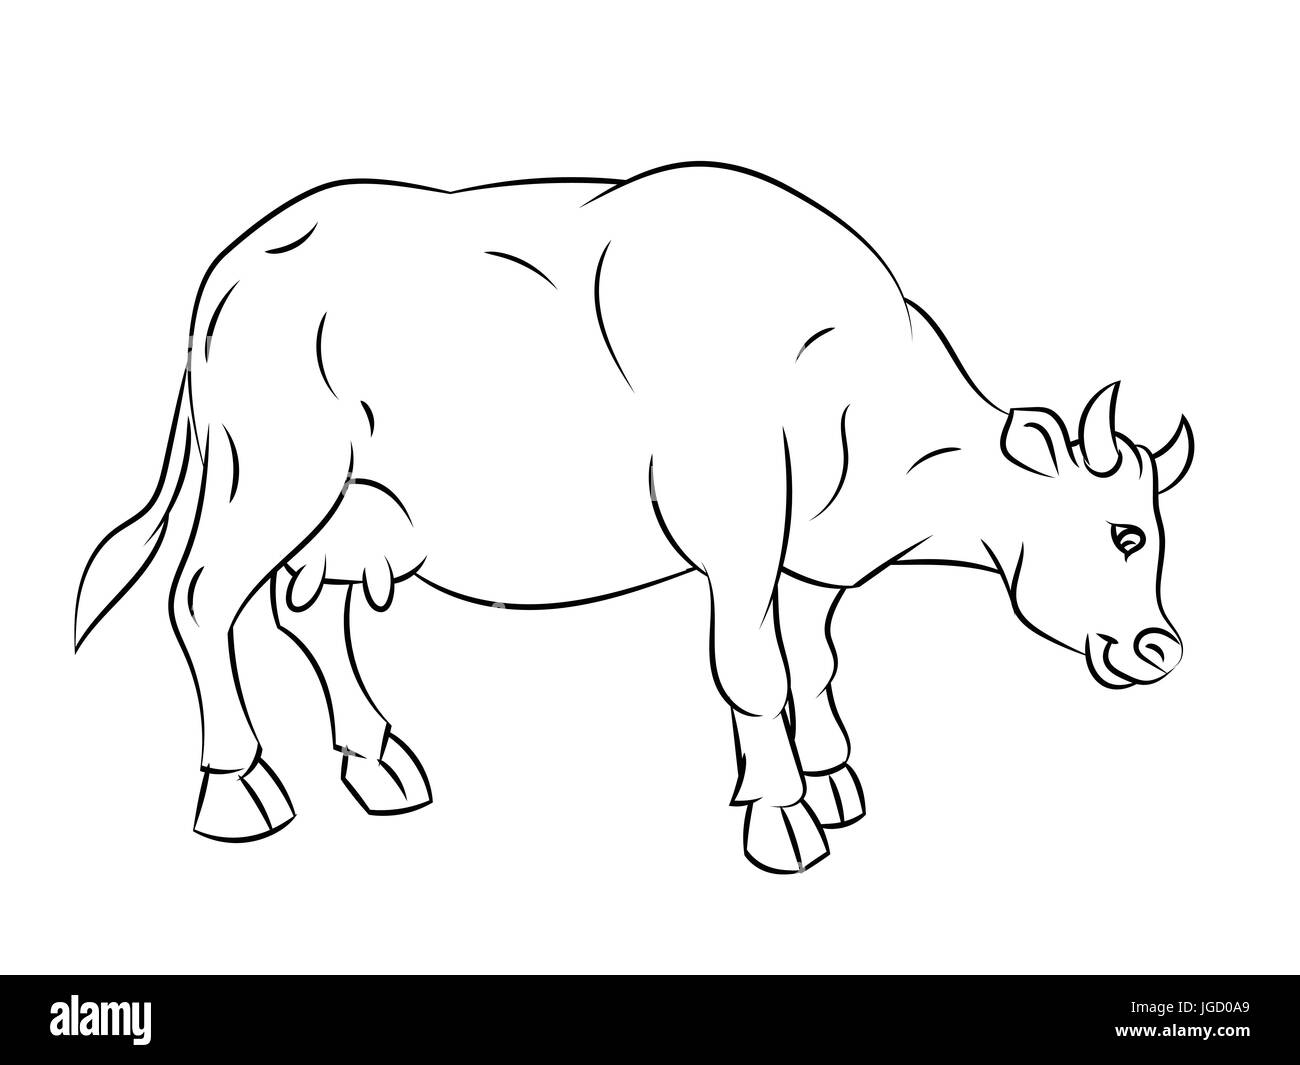 Hand drawn sketch of Cow isolated, Black and White Cartoon Vector Illustration for Coloring Book - Line Drawn Vector - Stock Image